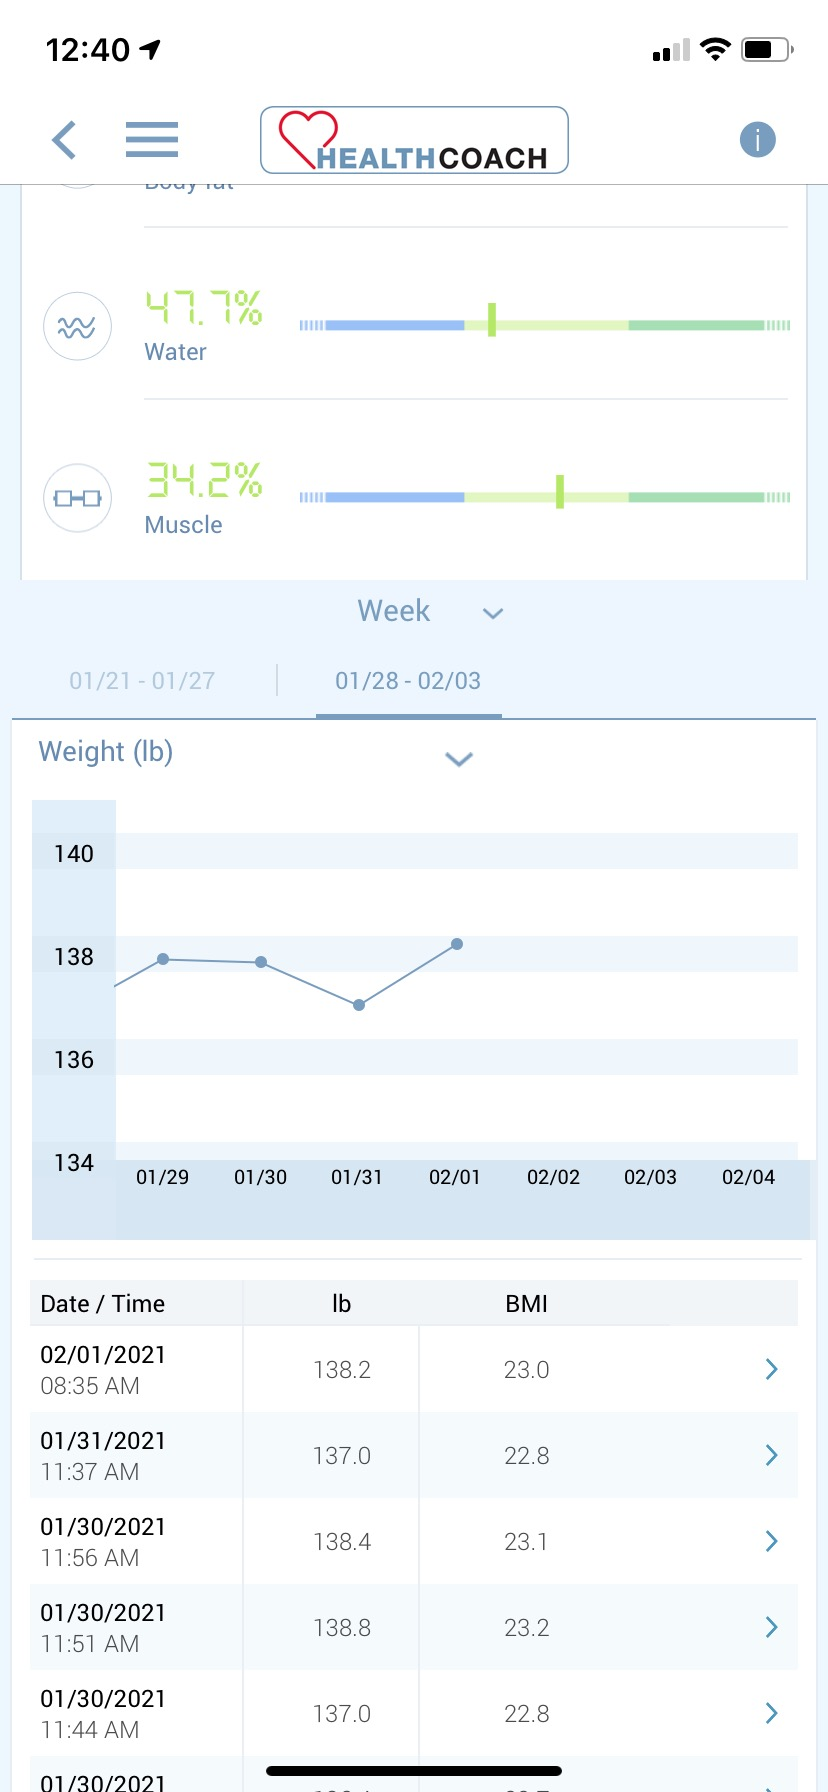 Health Coach app graph